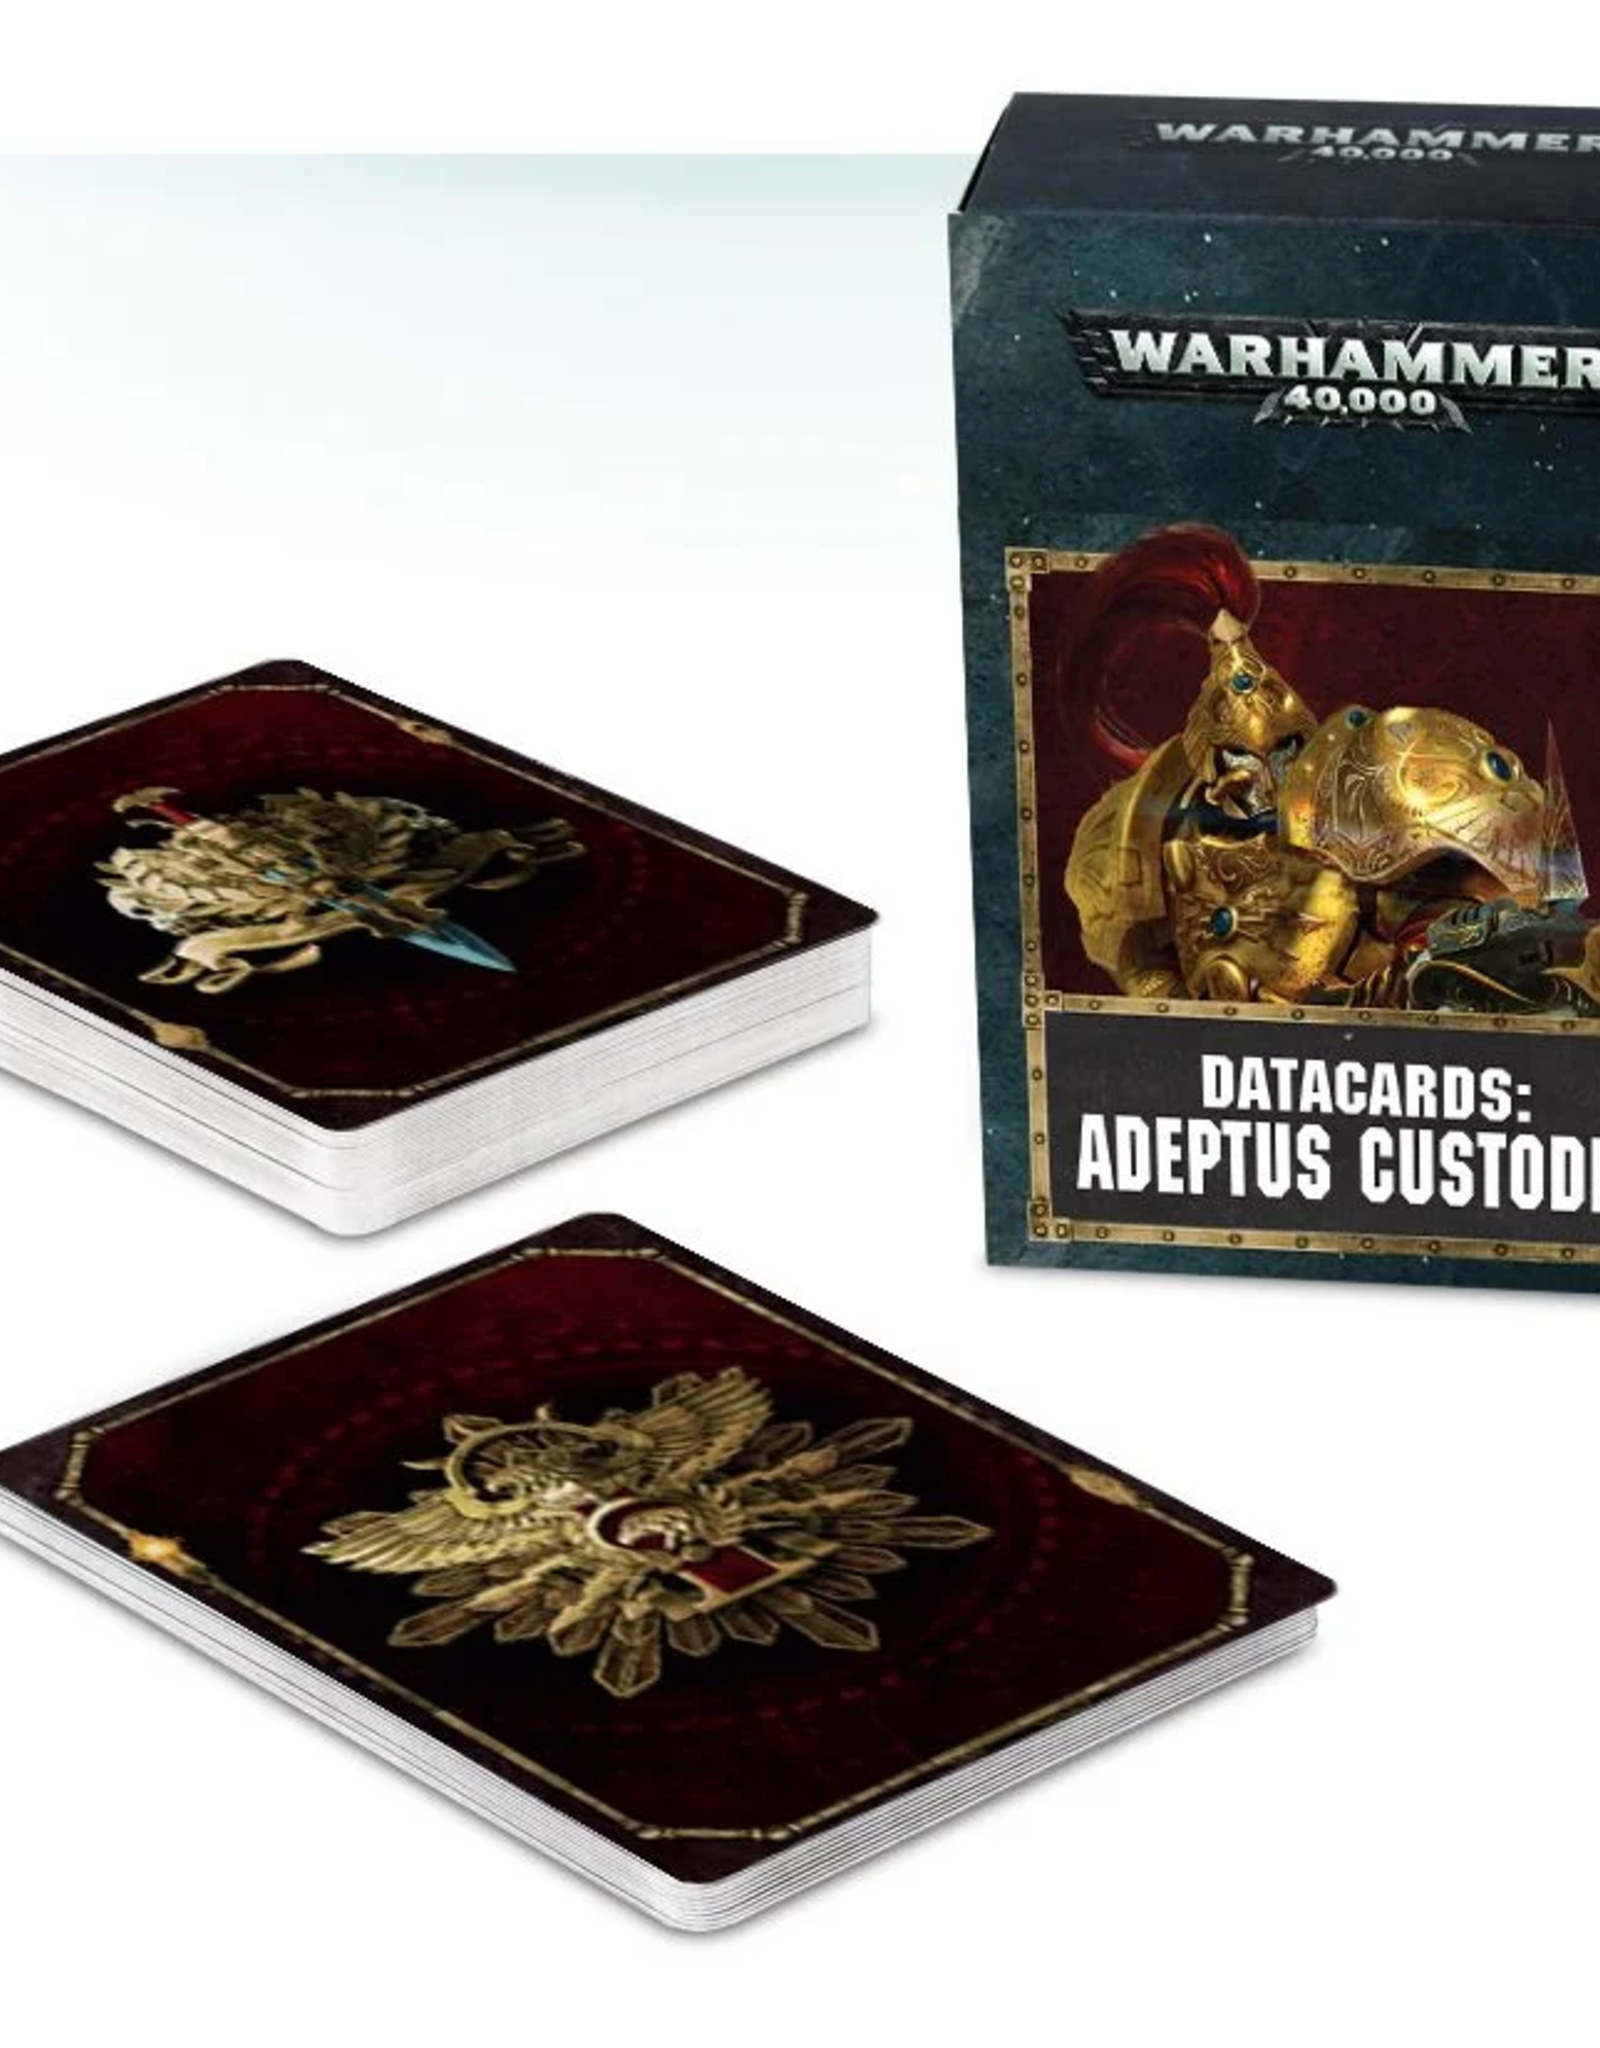 Games Workshop Datacards: Adeptus Custodes 8E